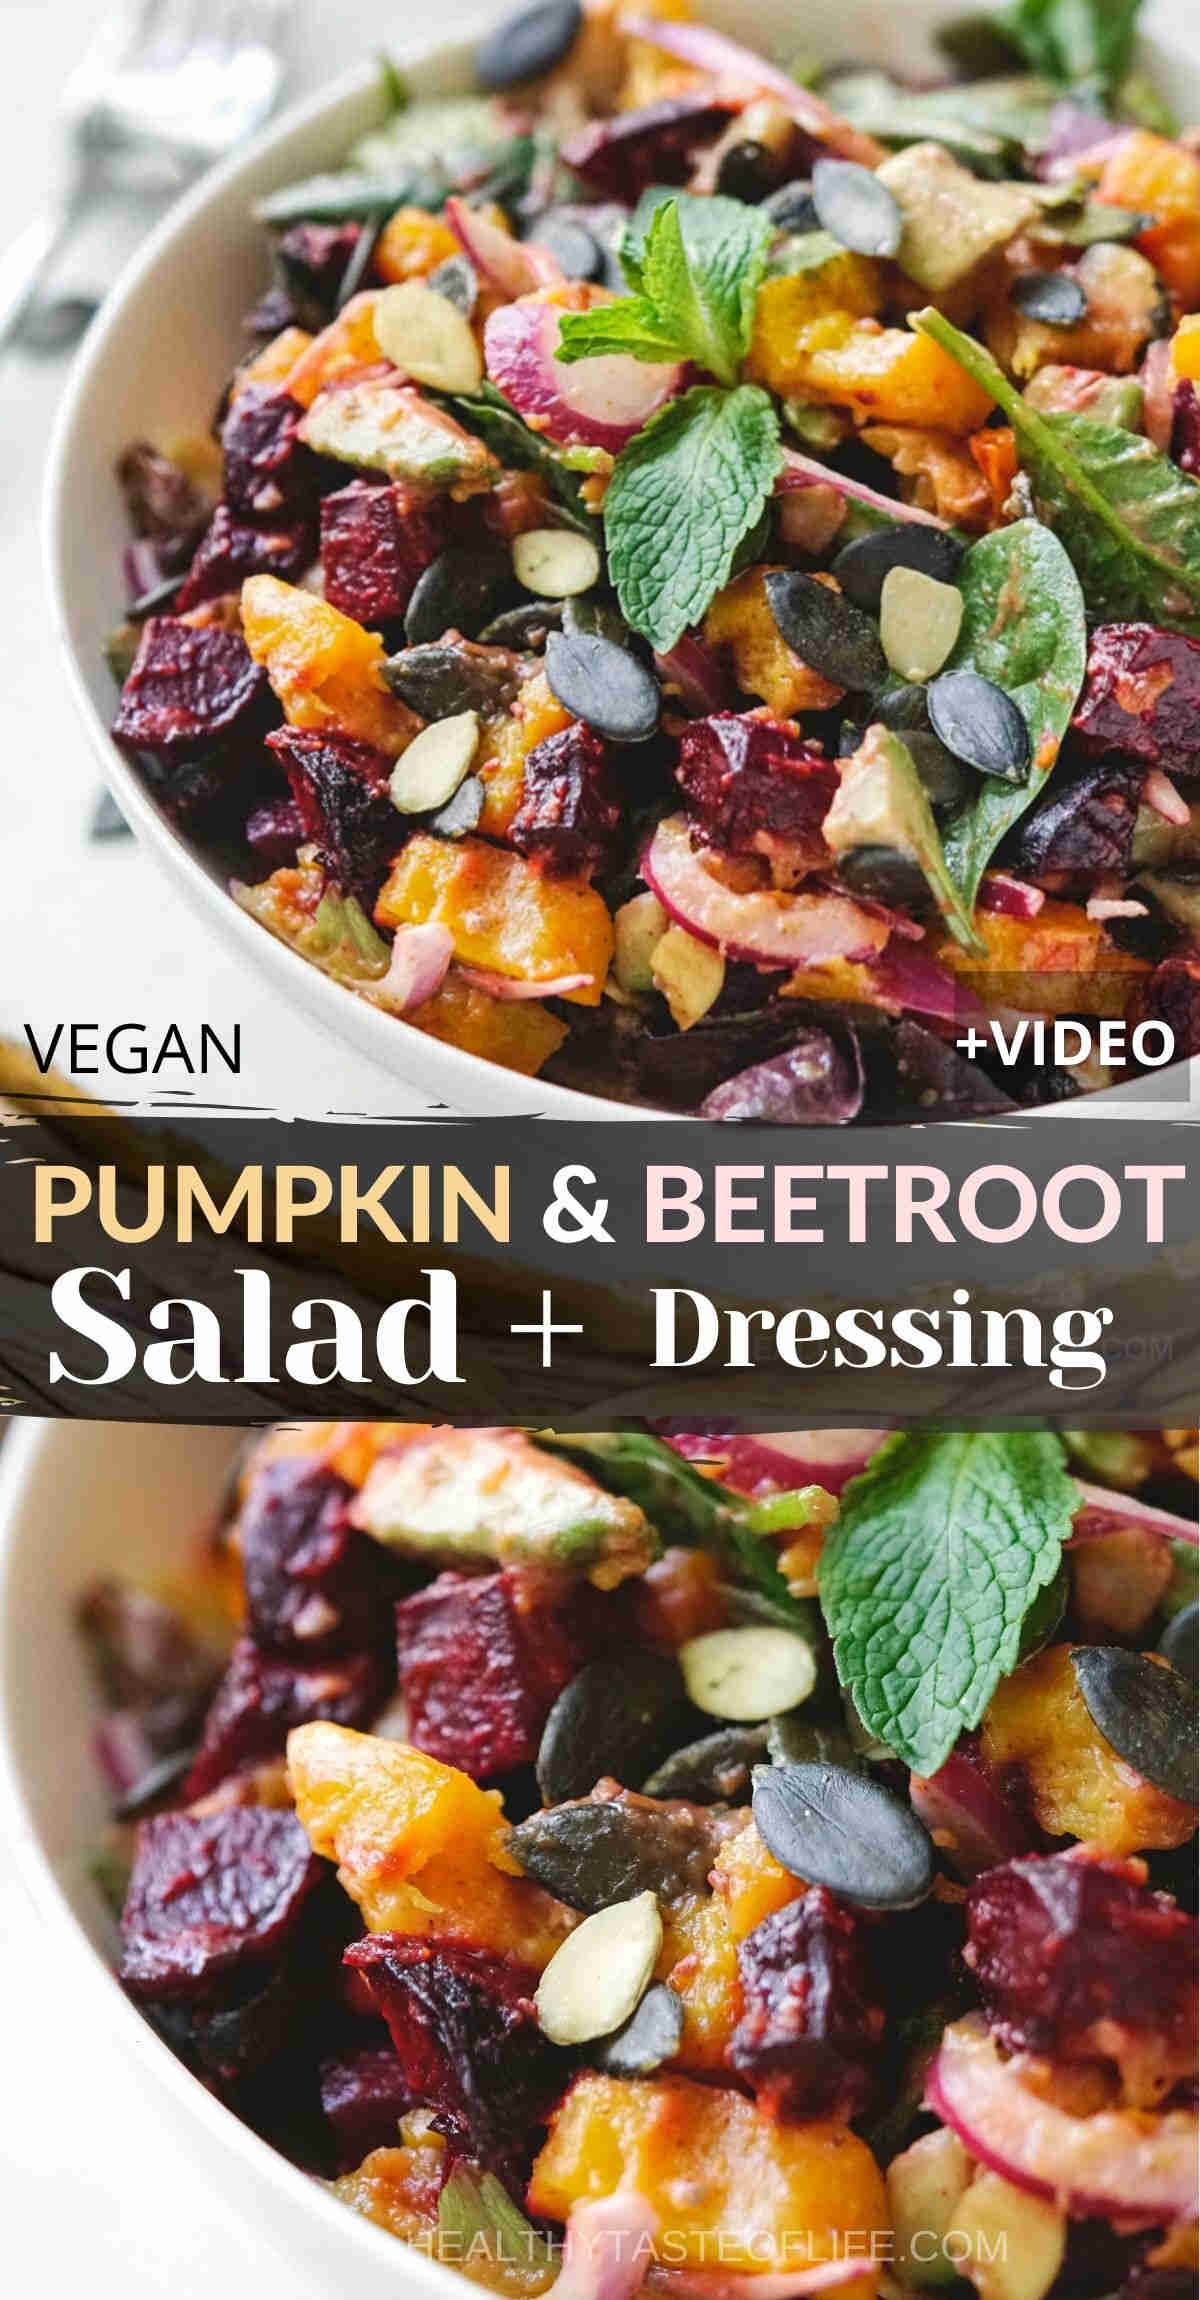 This easy pumpkin and beetroot salad features roasted pumpkin and beets, fresh leafy greens, pumpkin seeds, and a mustard lemon vinaigrette. A beetroot and pumpkin salad that is also gluten free, dairy free, vegan friendly and a perfect vegetarian side dish fit for a holiday table. #beetroot #pumpkin #salad #holiday #sidedish #vegansald #vegetarian #dairyfree